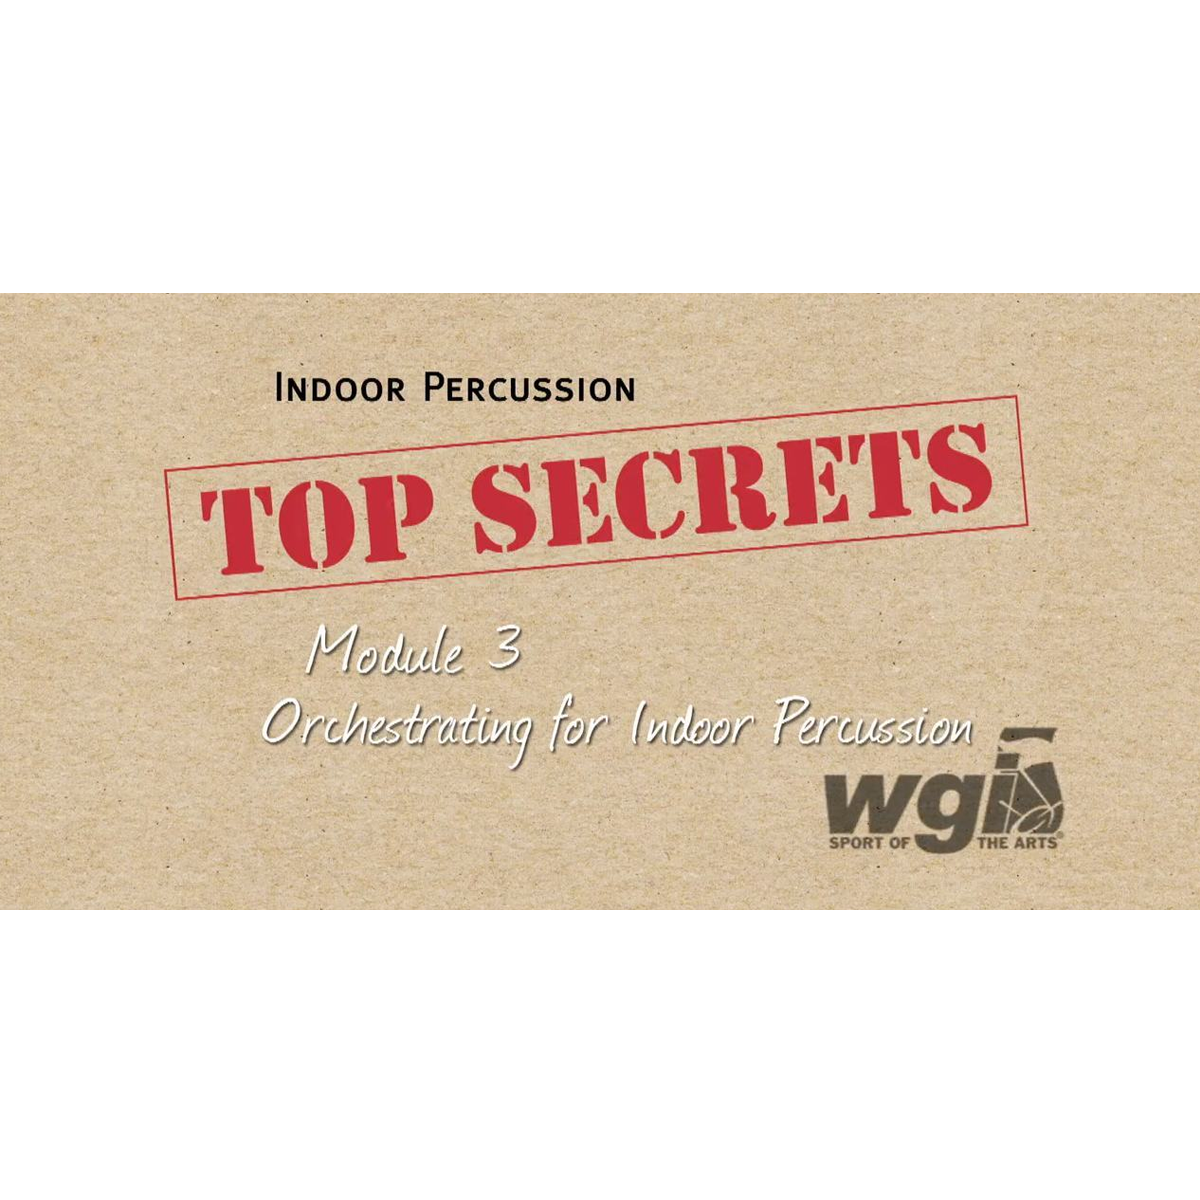 WGI Indoor Percussion Top Secrets Module 3 - Orchestrating for Indoor Percussion